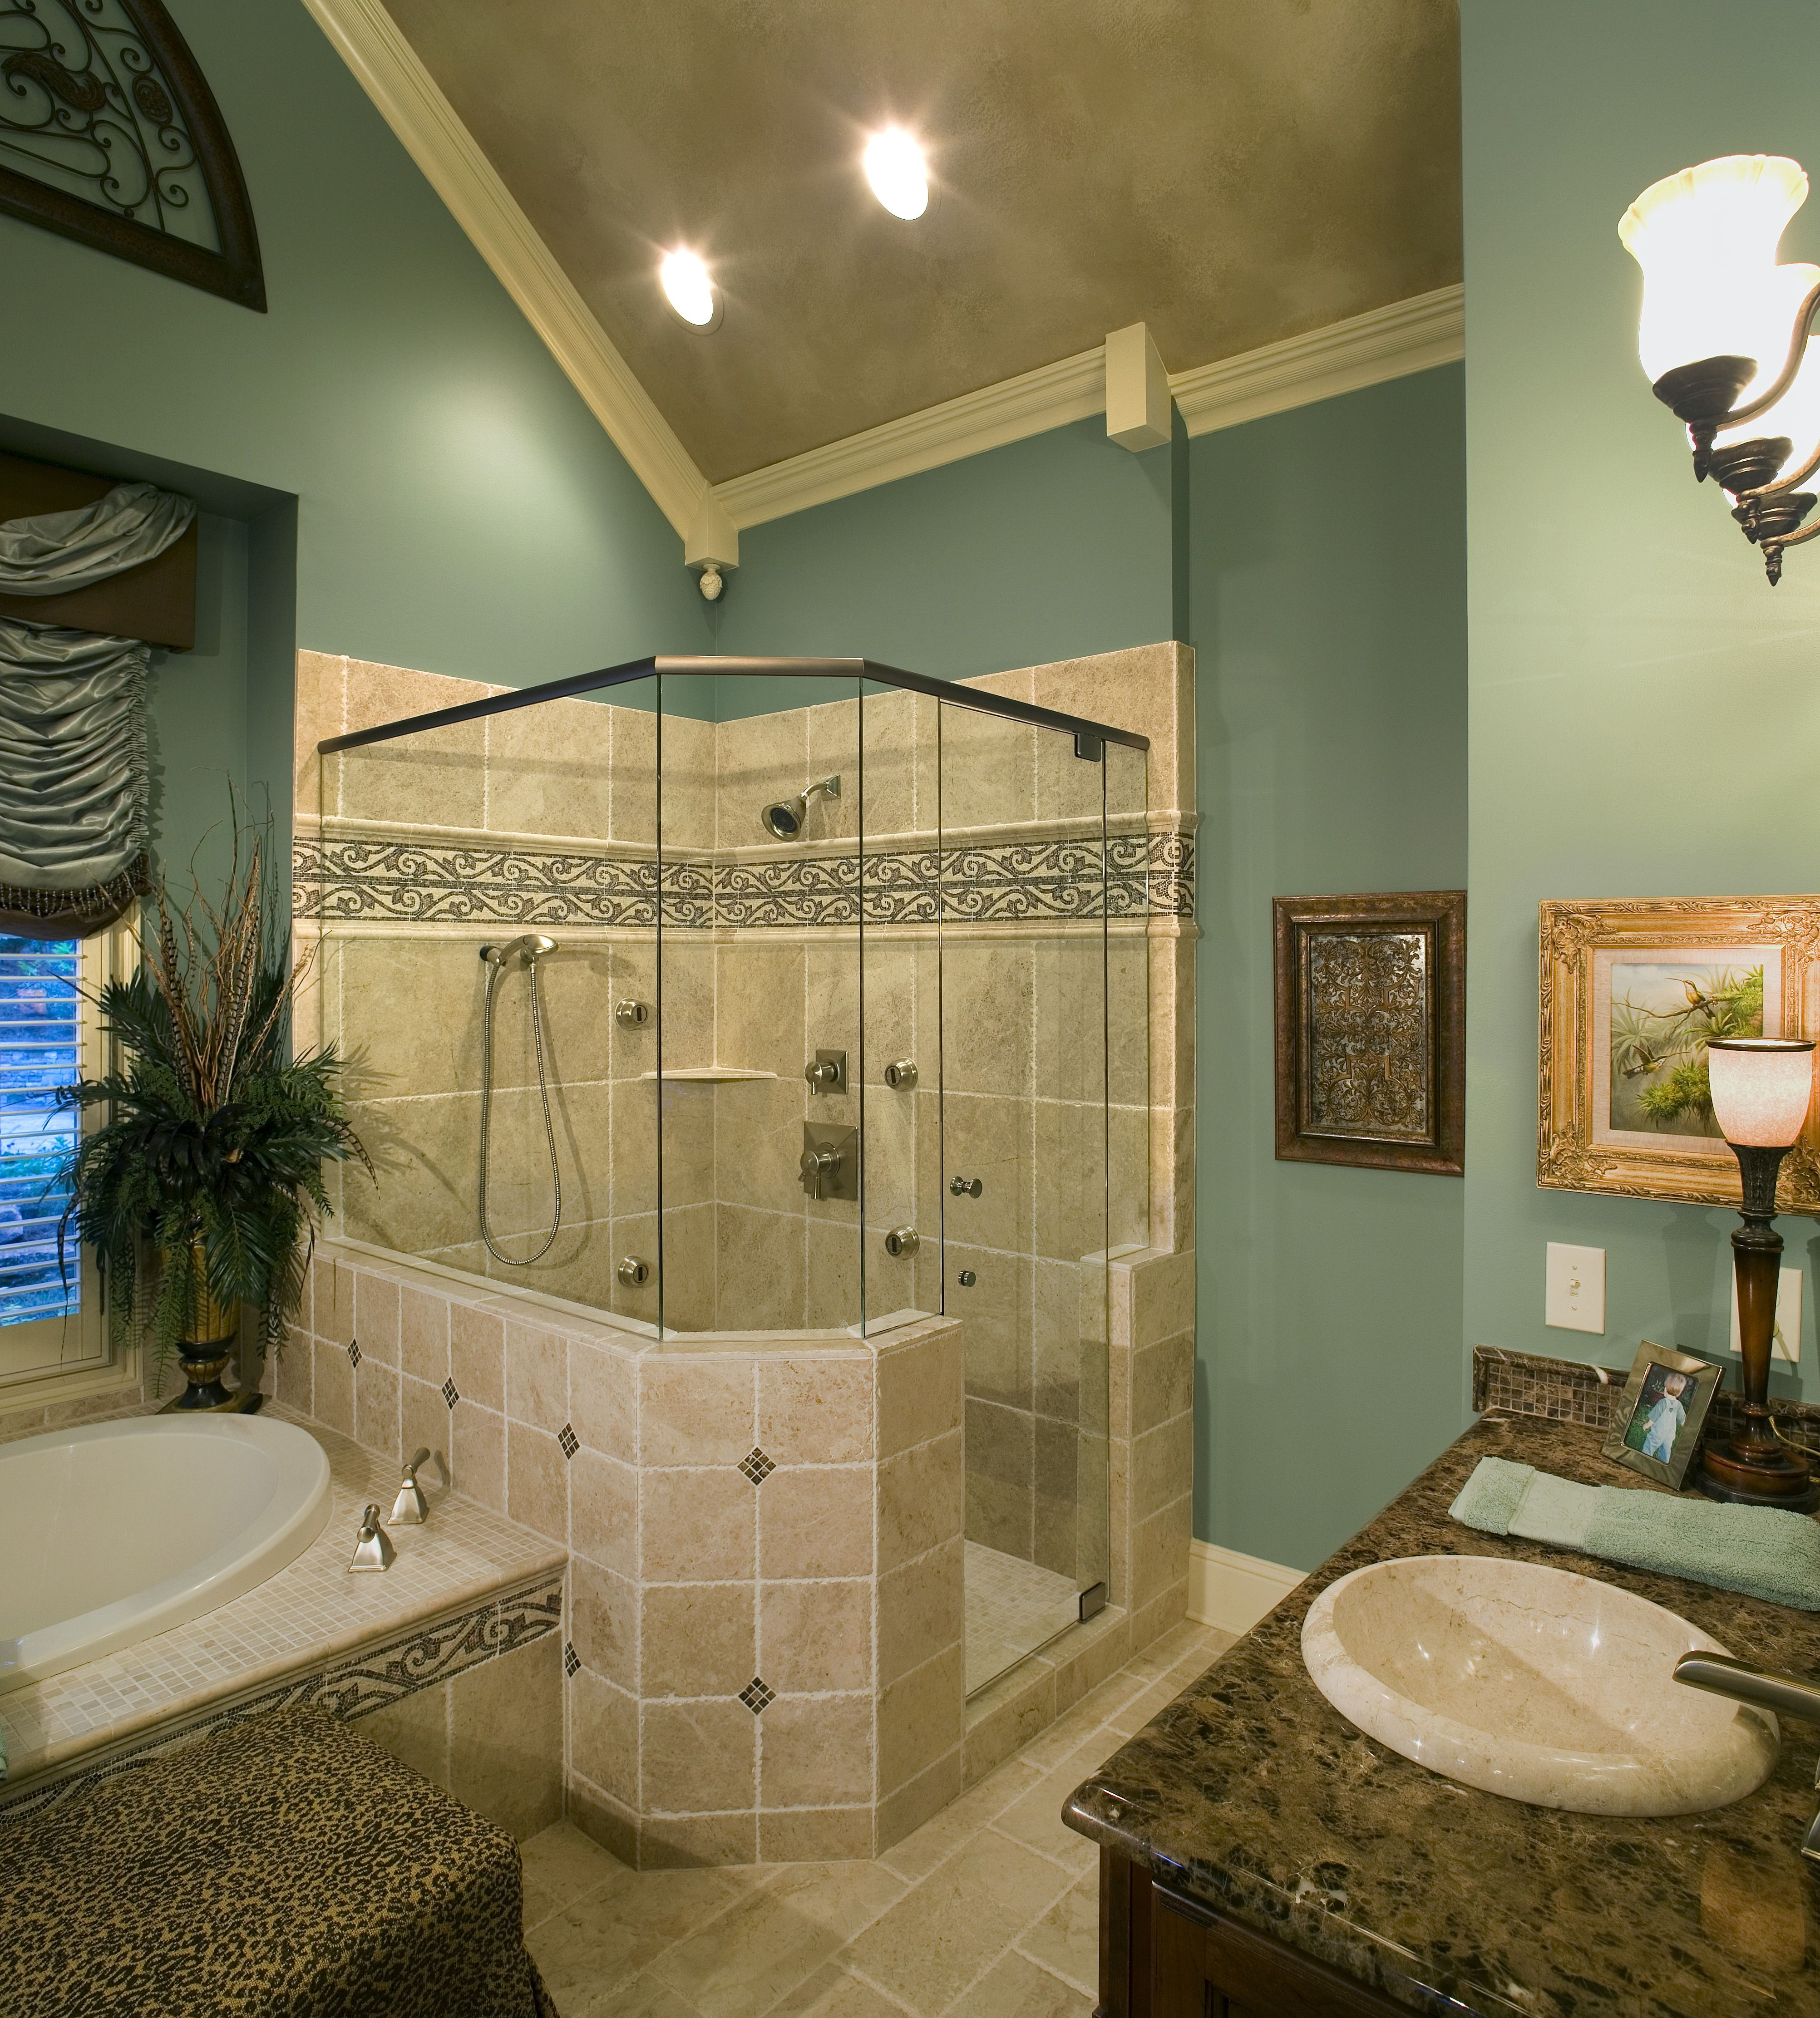 Remodeled Bathroom With Vaulted Ceilings A Handheld Shower Head - Contemporary bathrooms vaulted ceiling